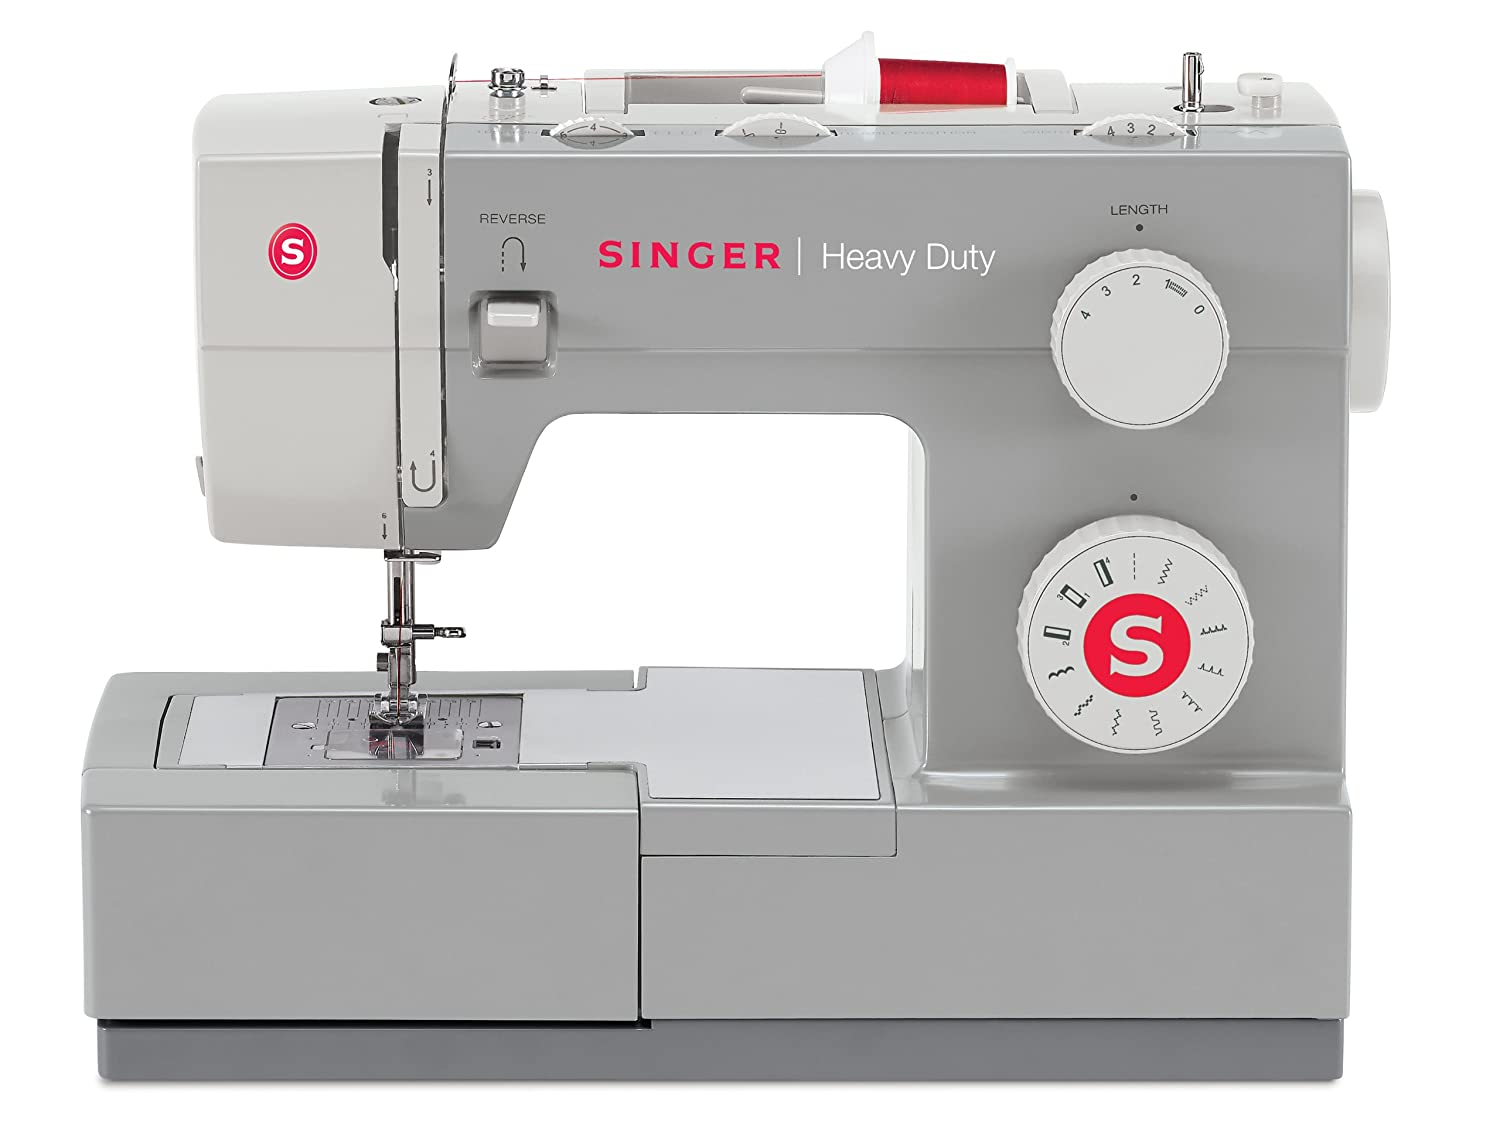 $129.99 (was $221.19) SINGER 4411 Heavy Duty Extra-High Sewing Speed 11-Stitch Sewing Machine with Metal Frame and Stainless Steel Bedplate